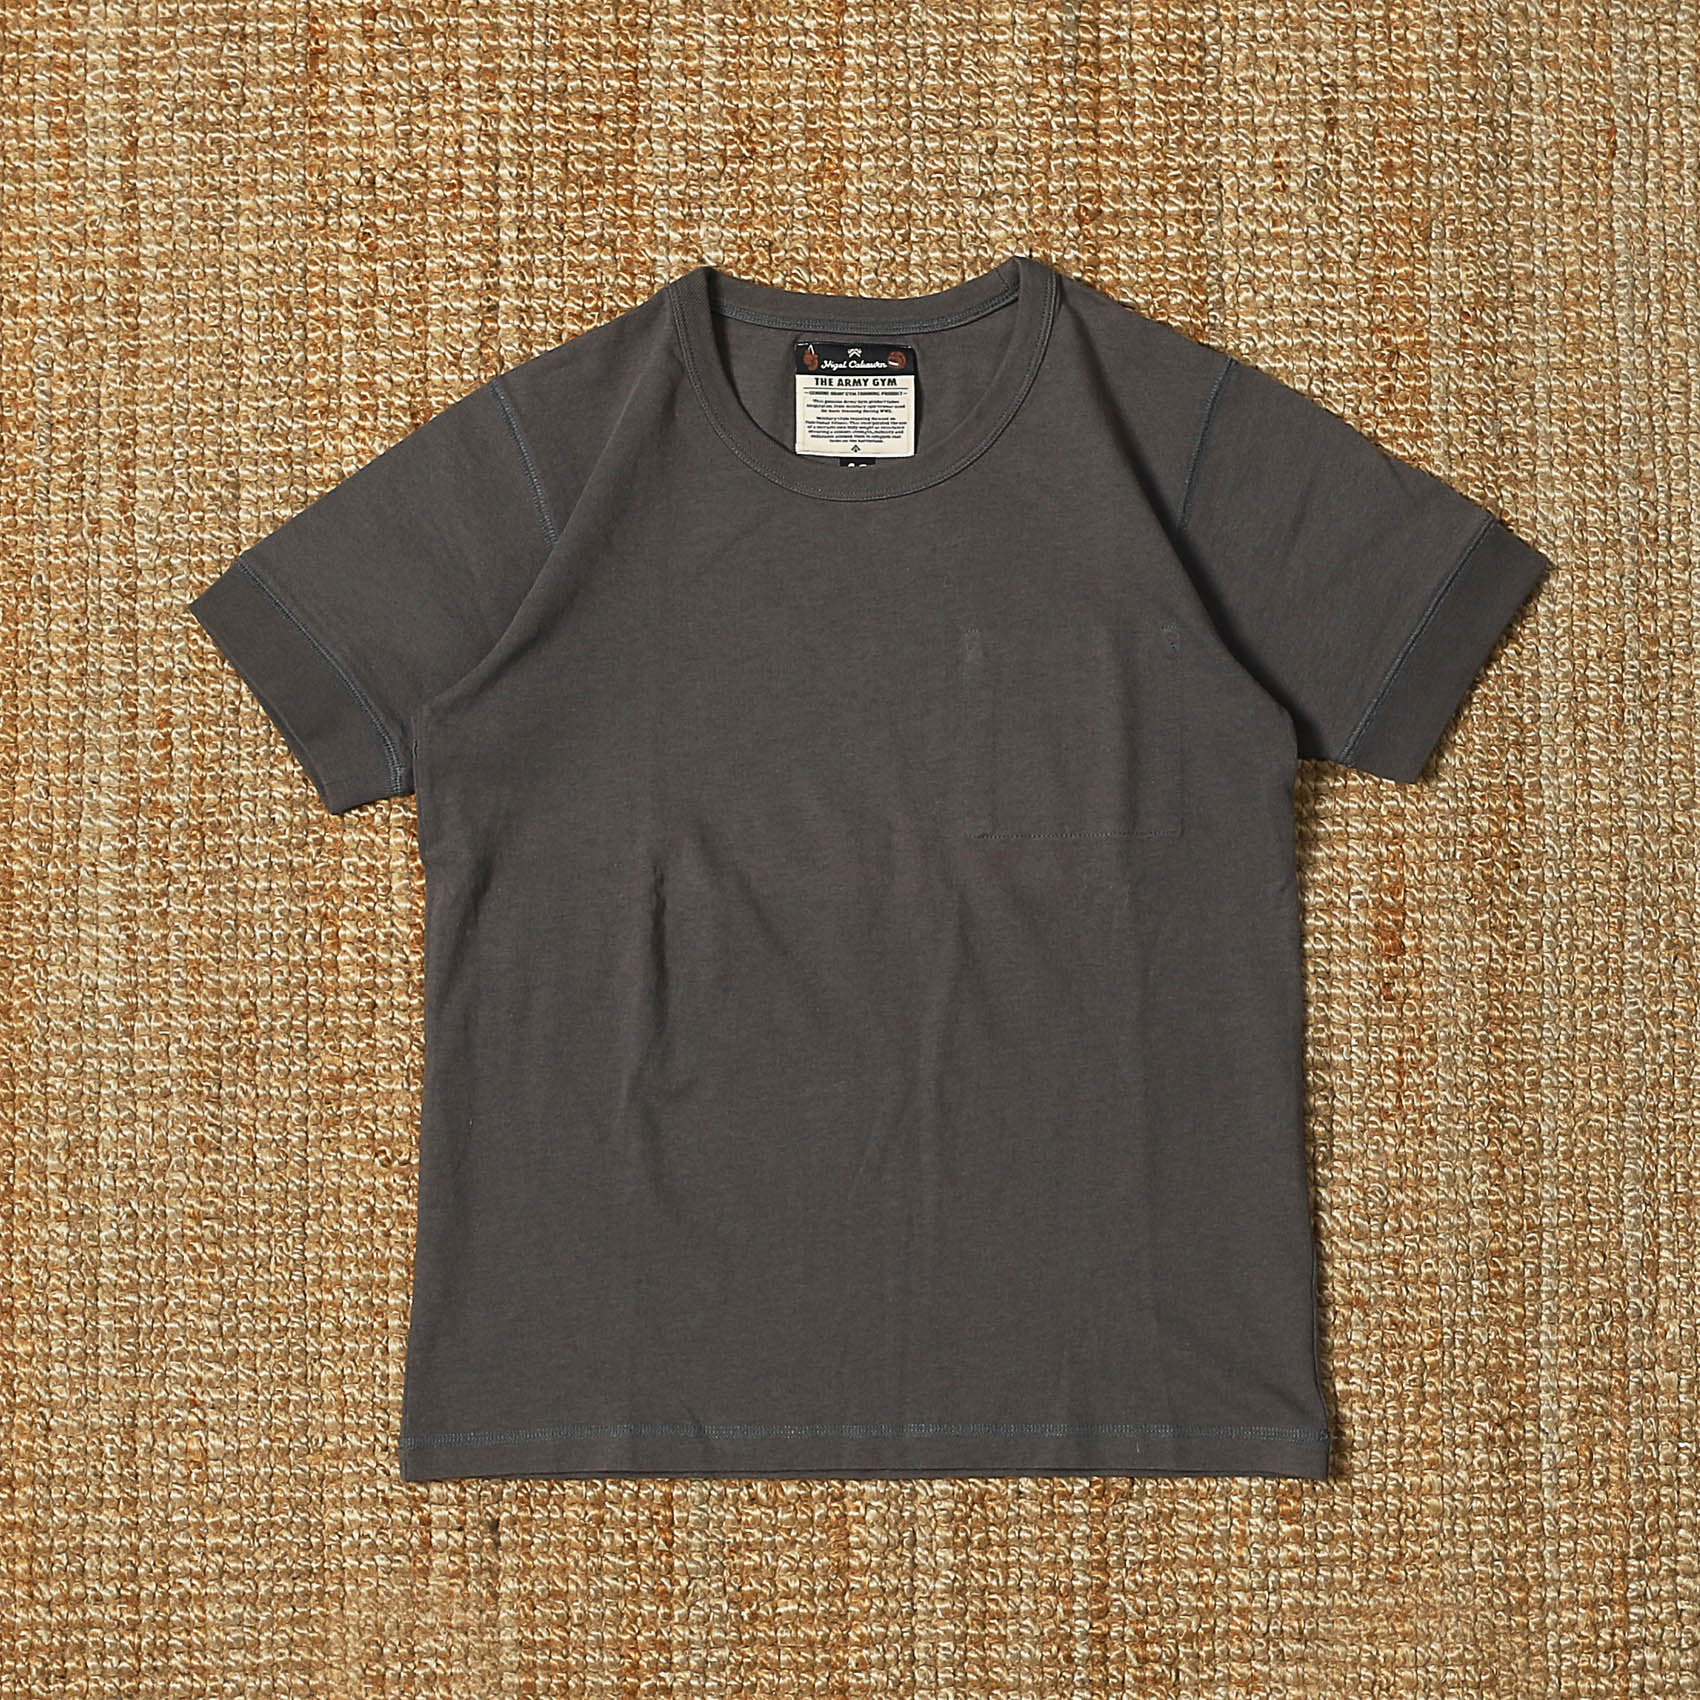 NIGEL CABOURN S/S INNER POCKET TEE - GREY